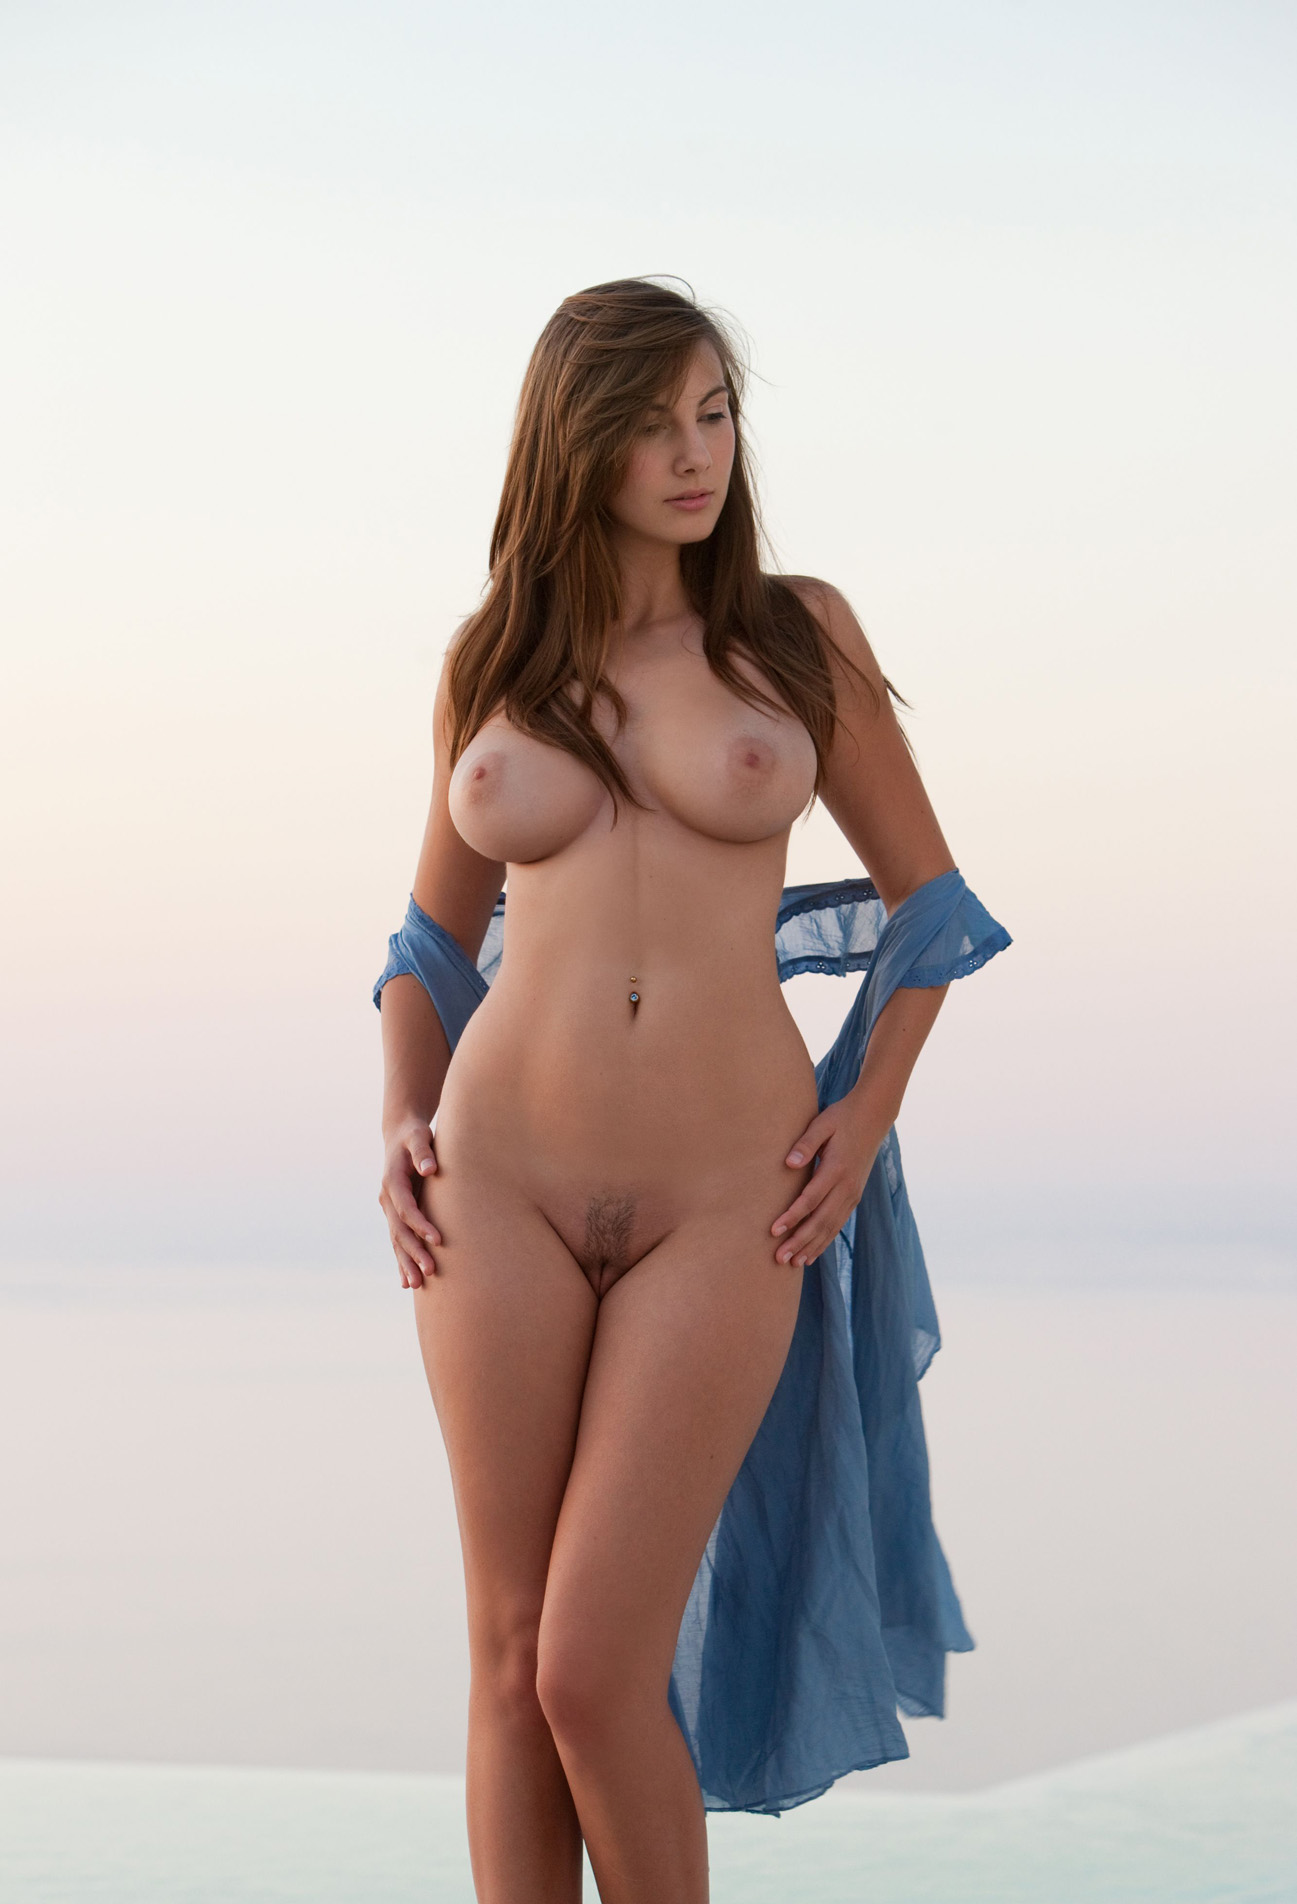 Naked woman with wide hips